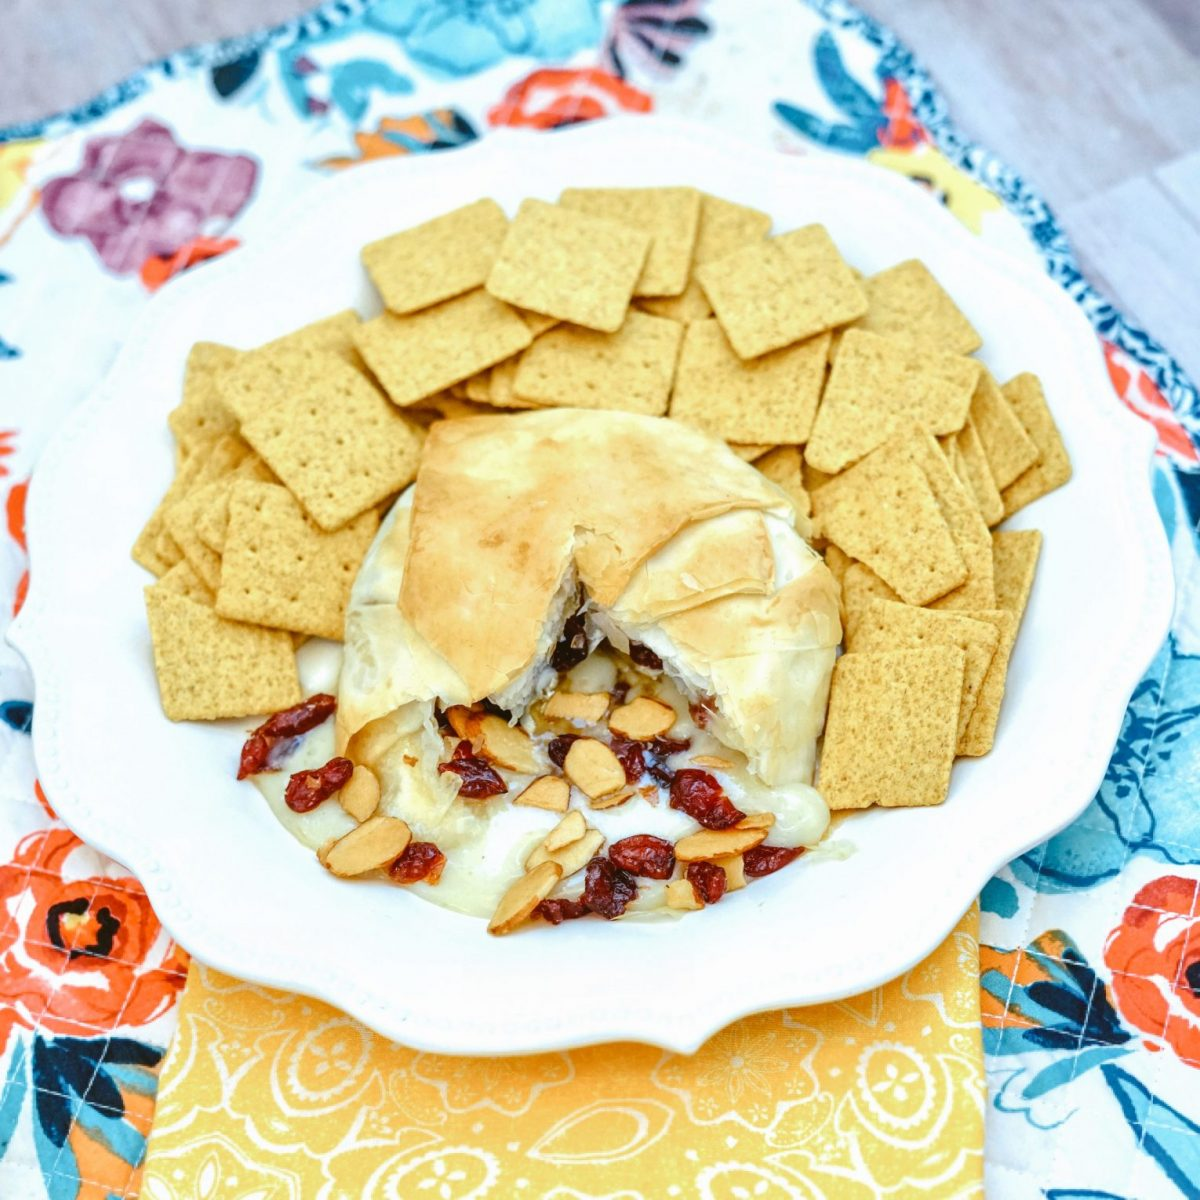 How to Bake Brie